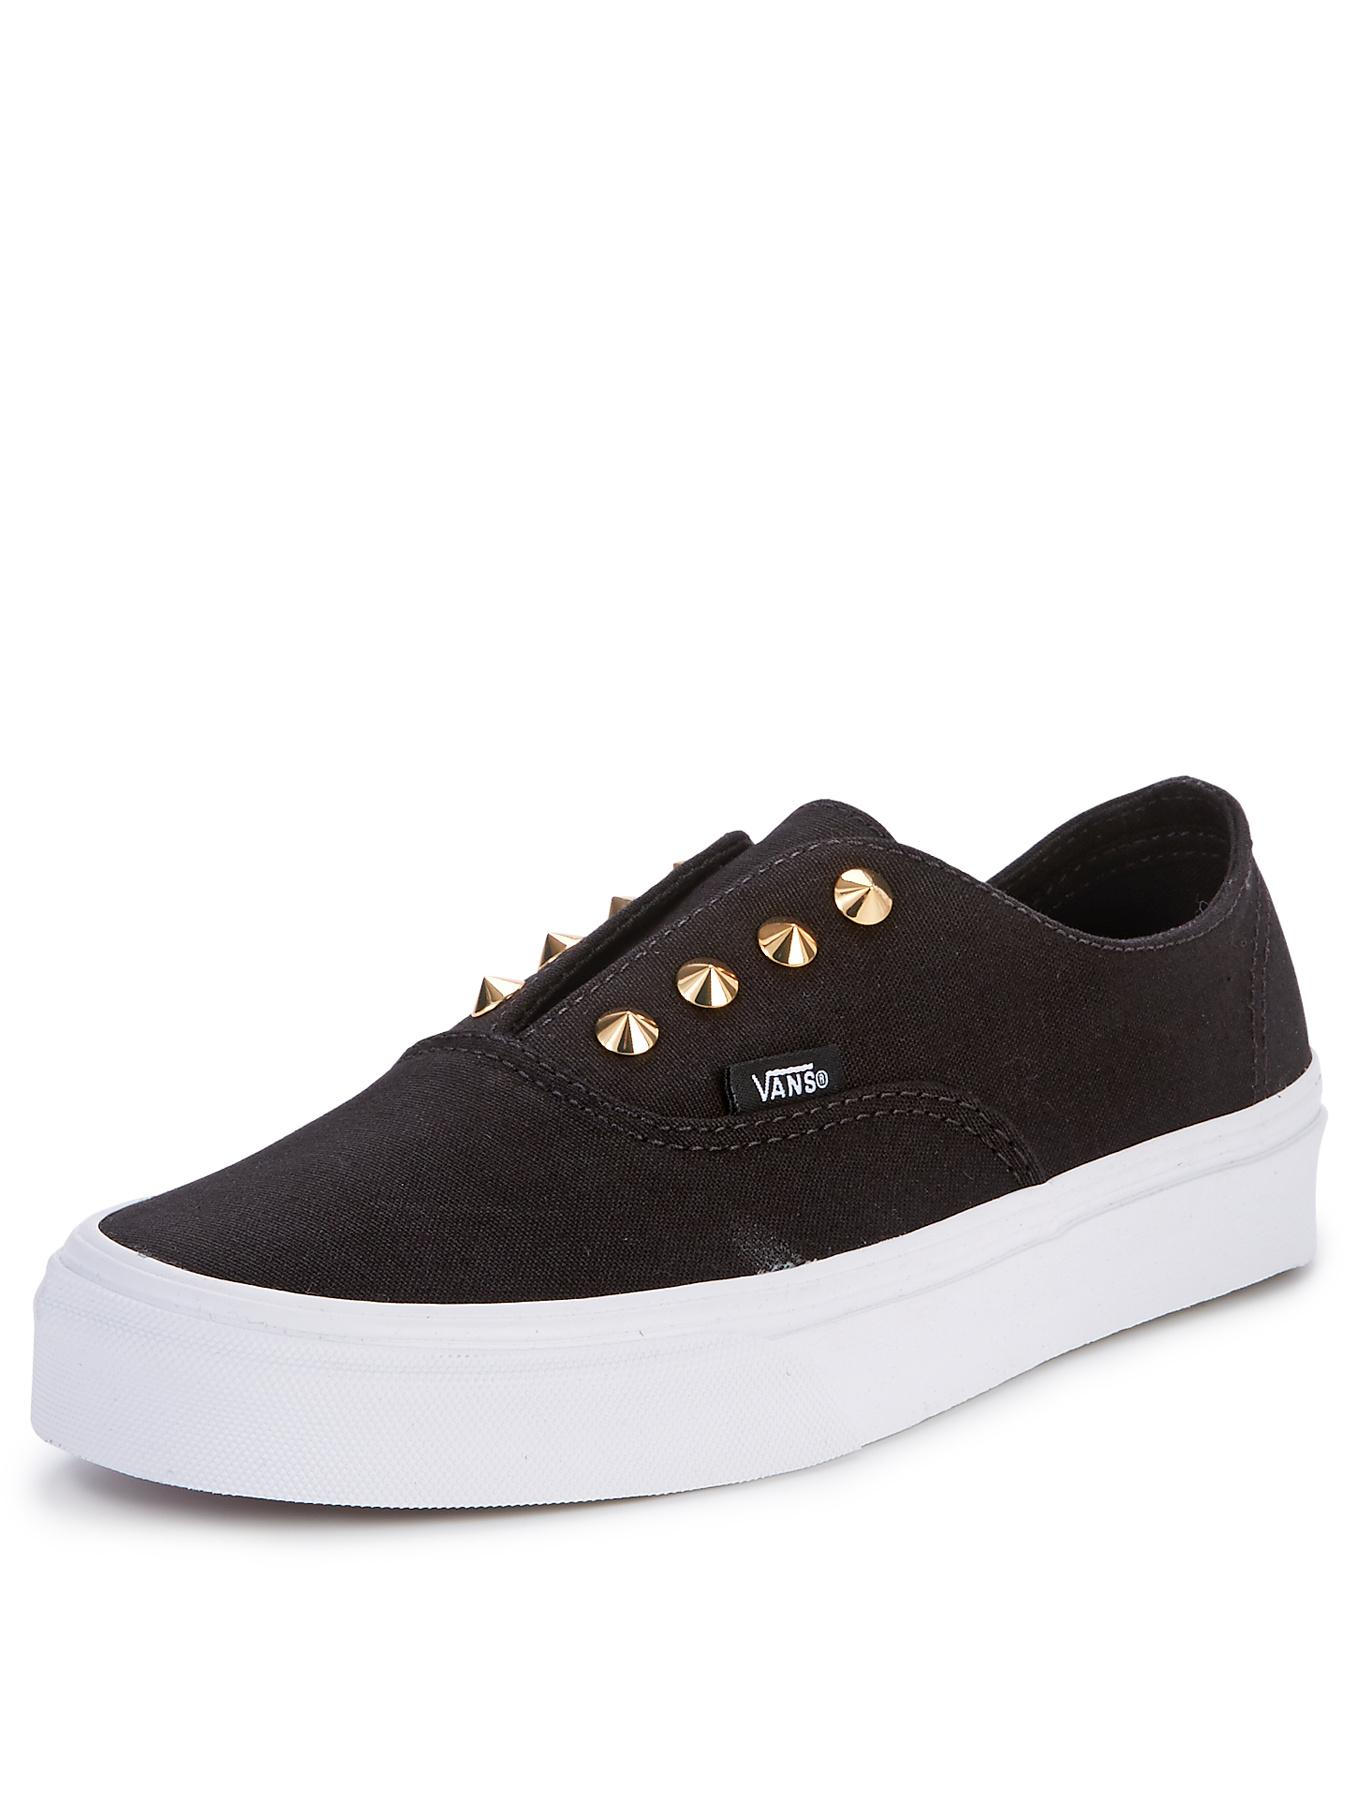 Vans Authentic Studs Trainers - Black, Black